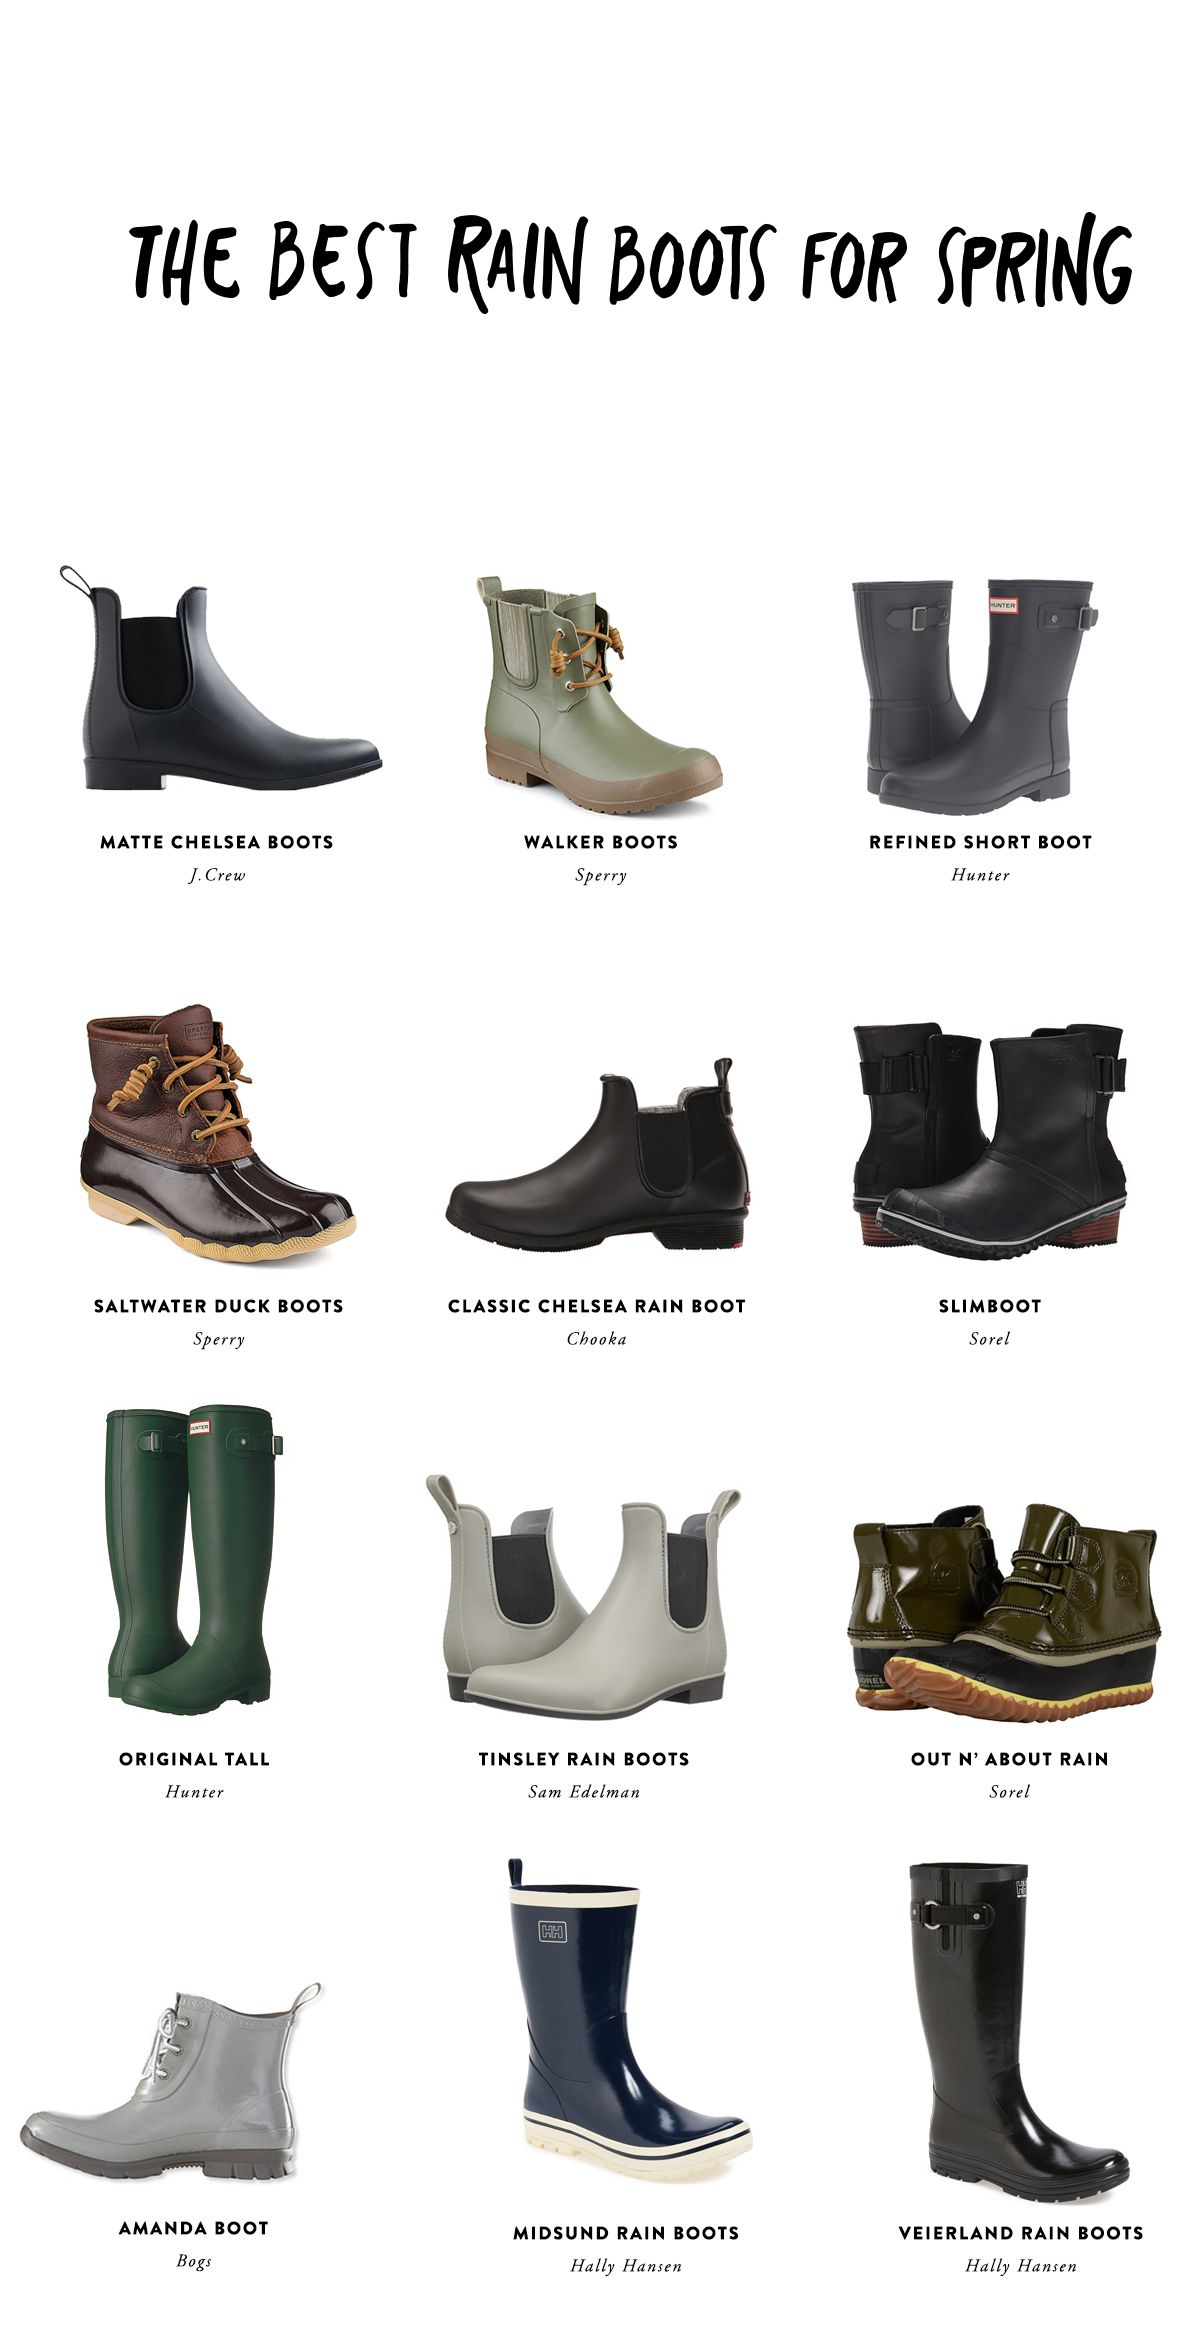 bf7a65923611 The Best Spring Rain boots to help you prep for spring. Get the full list  on The Fresh Exchange.